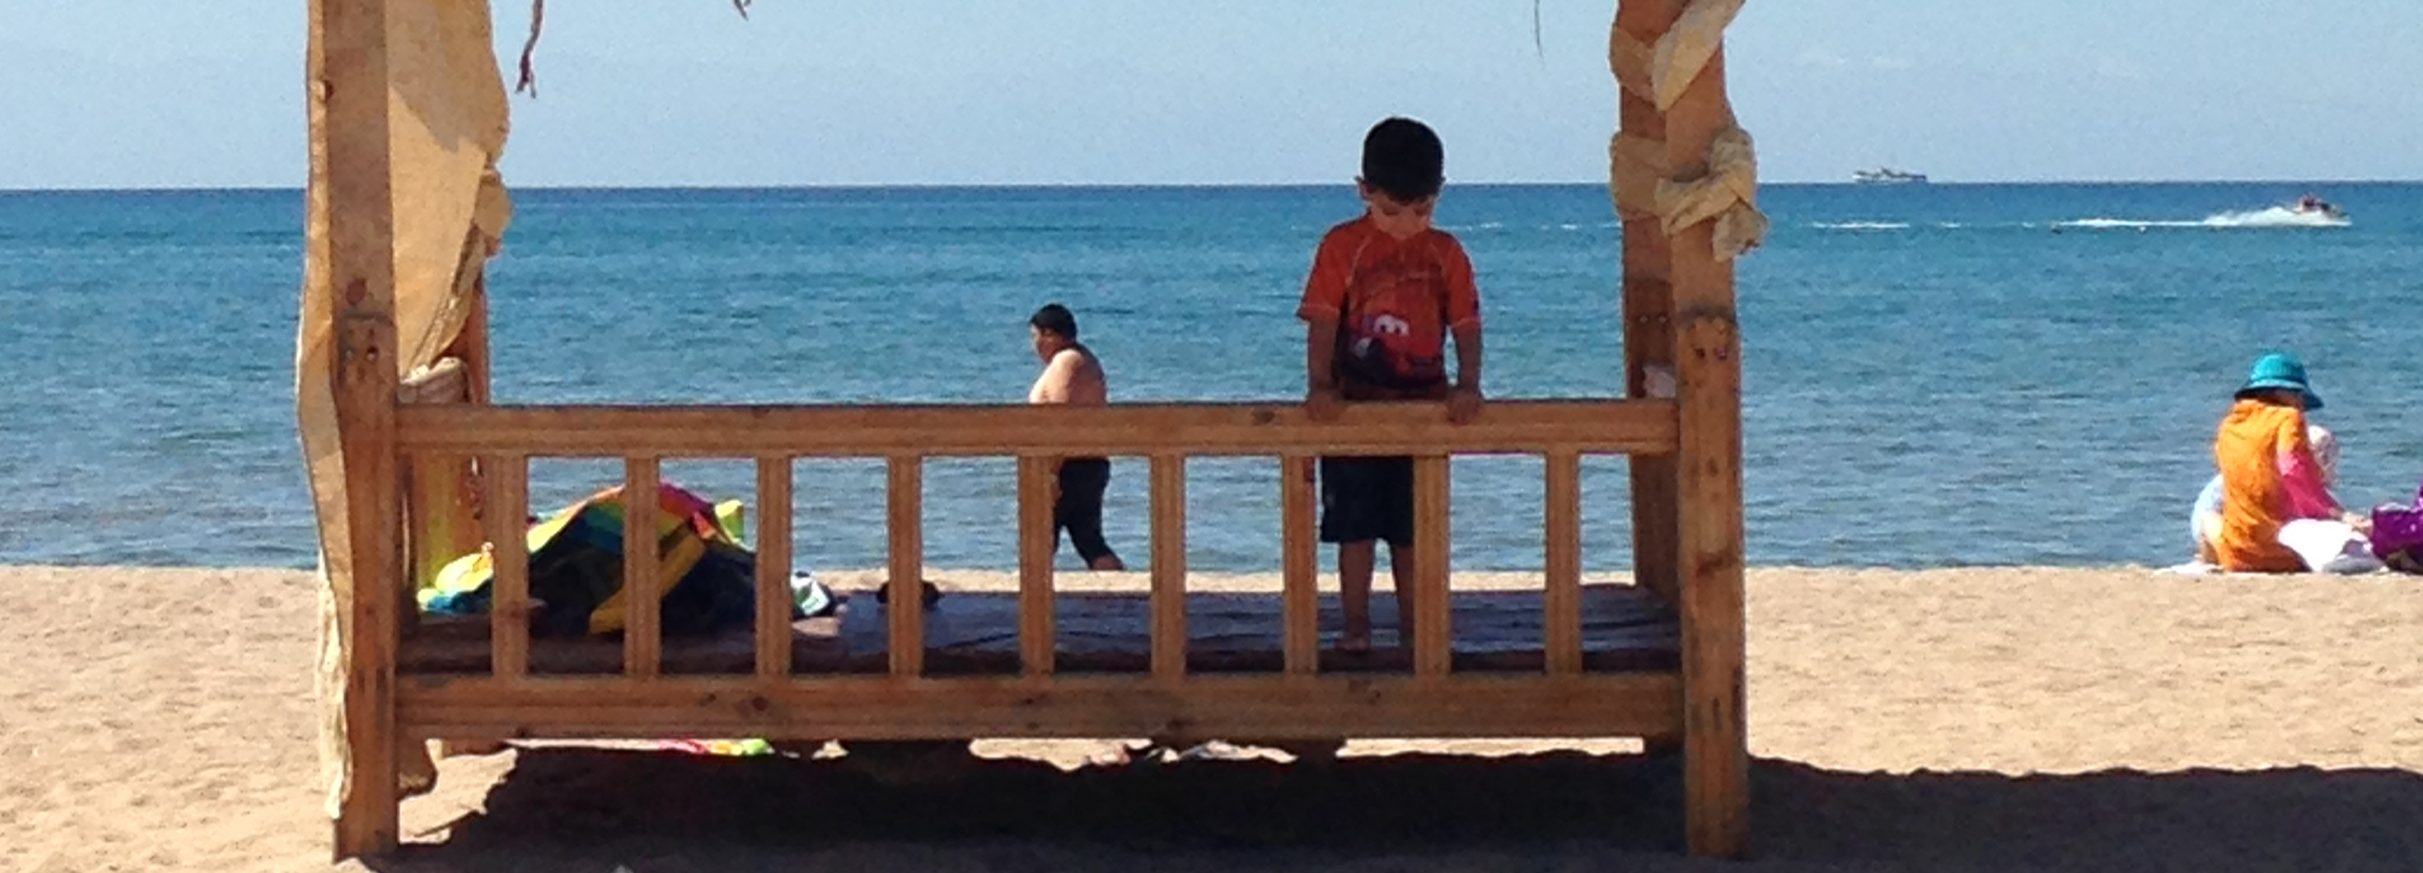 boy looking at sand